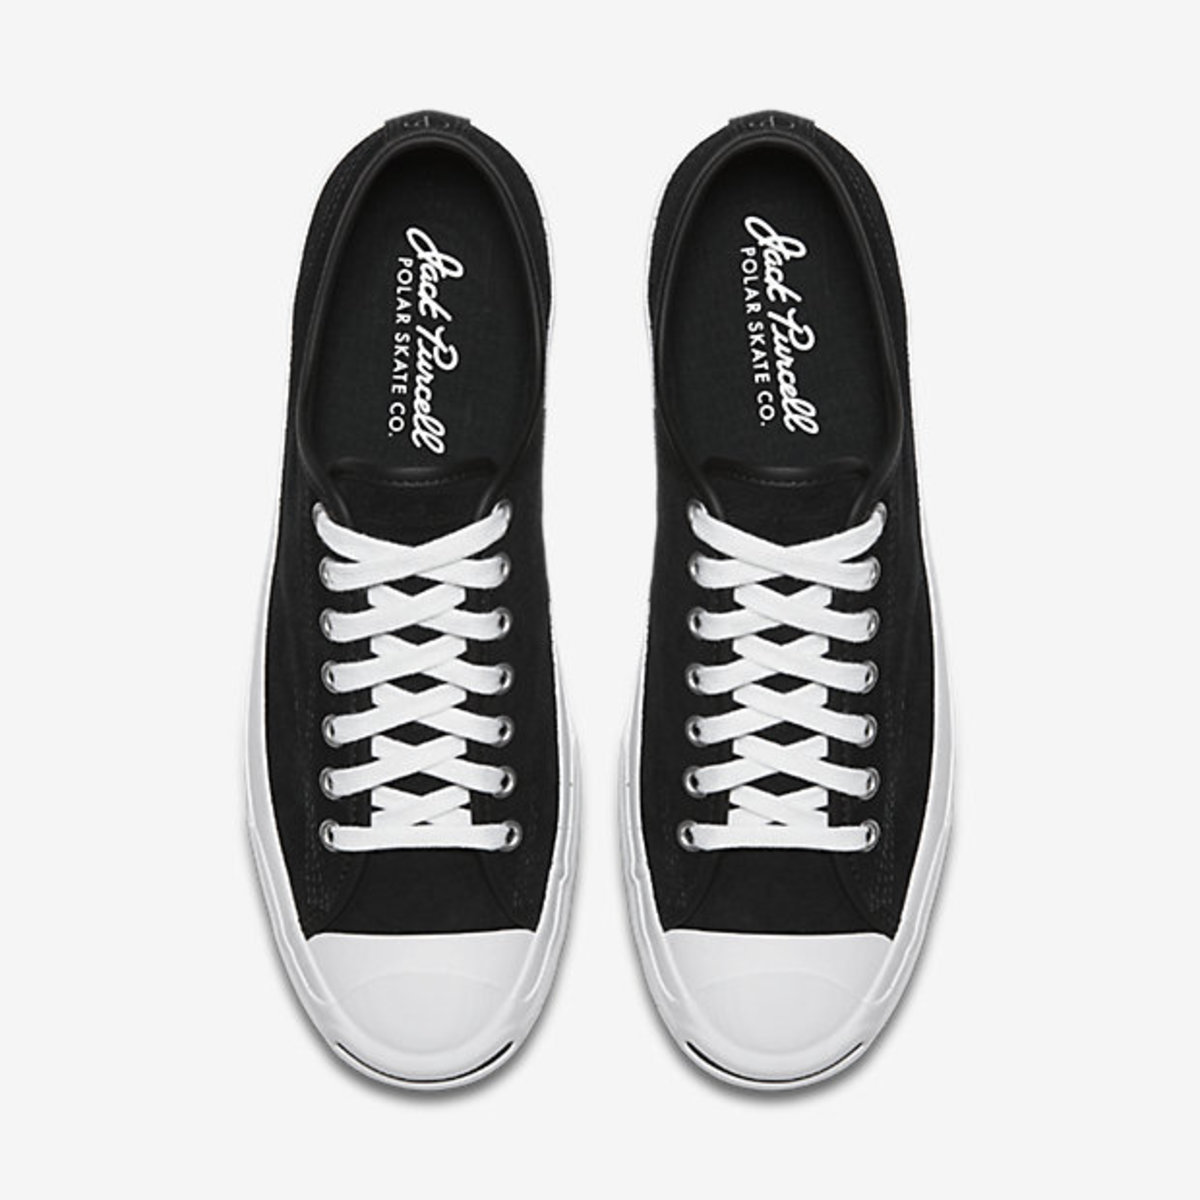 converse-jack-purcell-pro-x-polar-mens-skateboarding-shoe